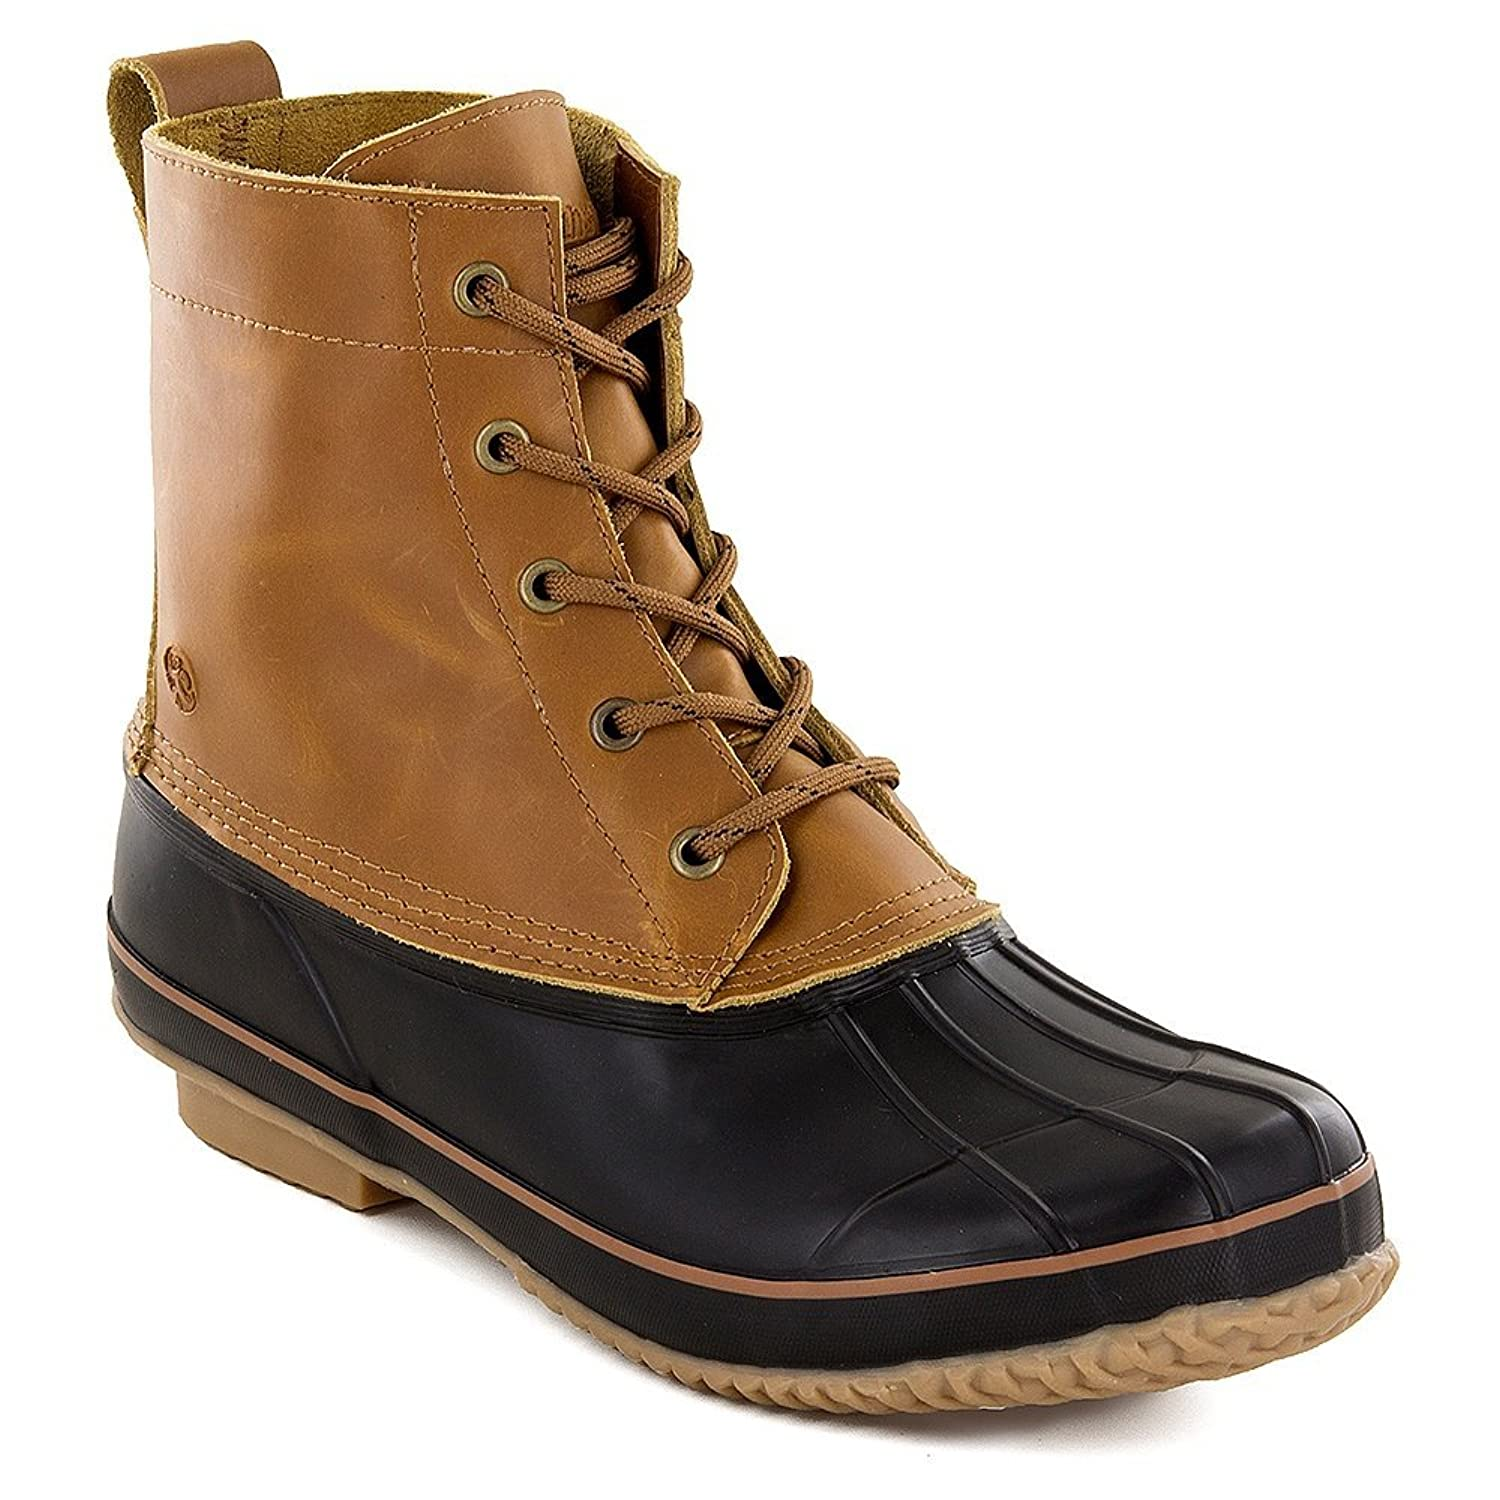 Northside Men's Landon Waterproof Duck Style Boot